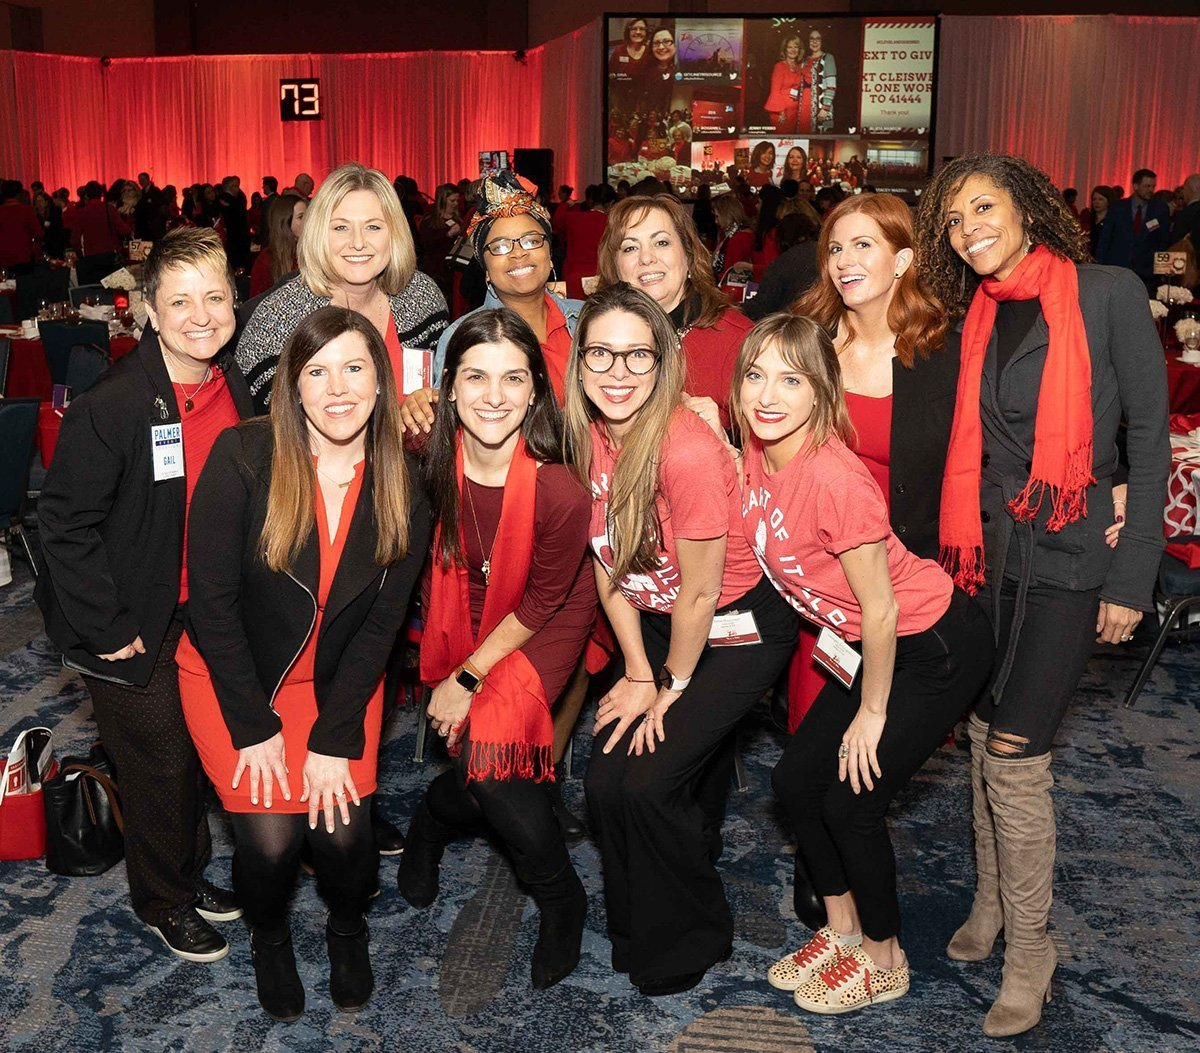 common event planning challenges | go red for women luncheon group photo